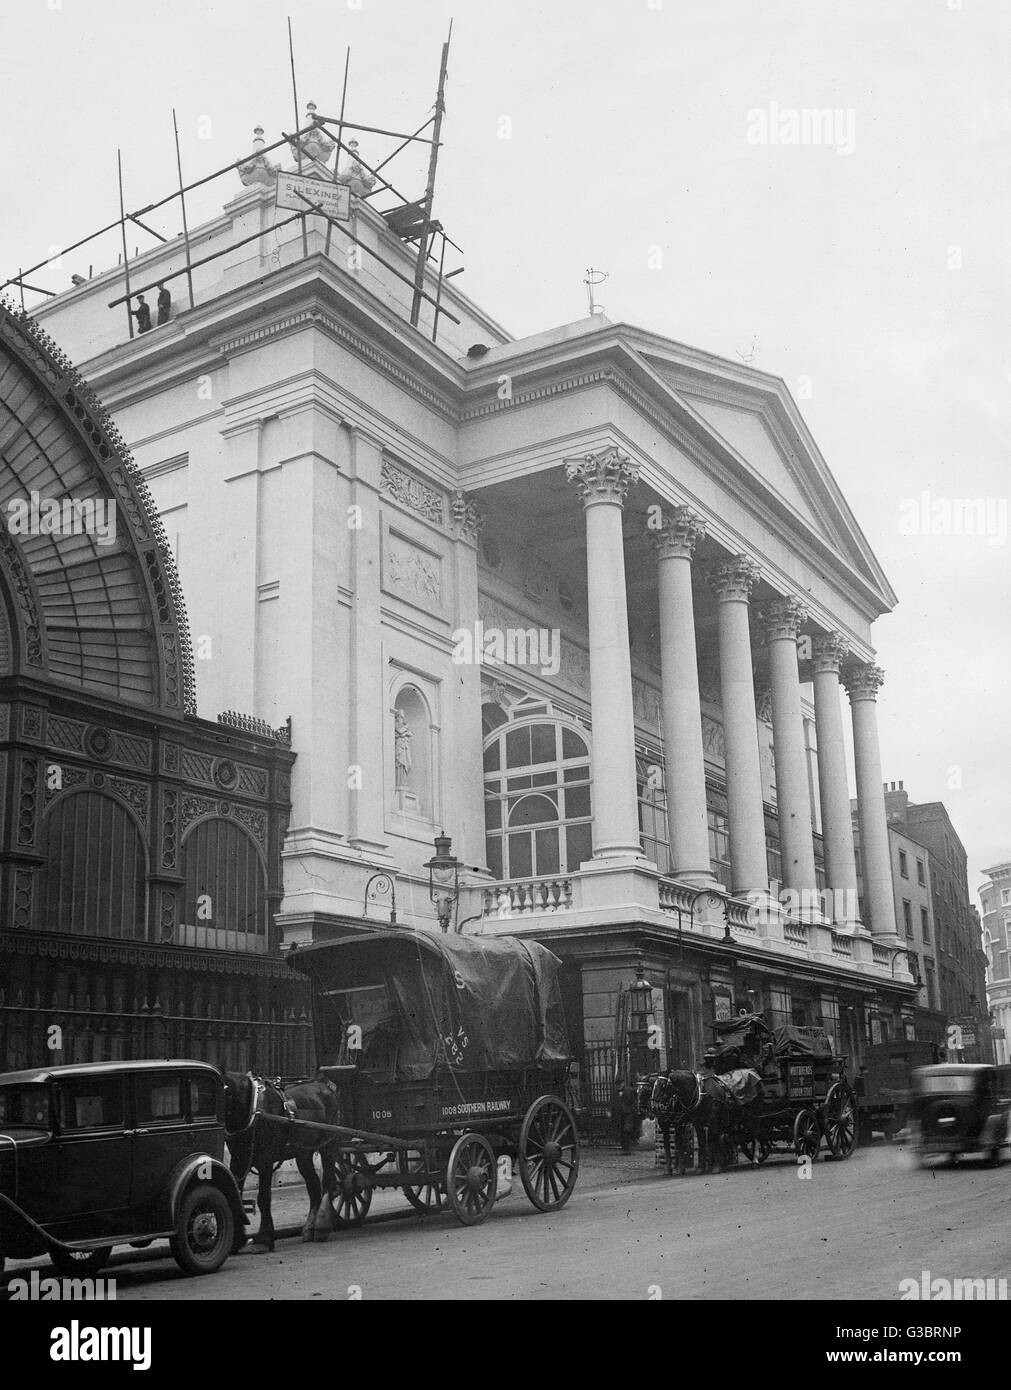 Royal Opera House, Covent Garden, London, with reconstruction to the stonework taking place.  The Floral Hall is - Stock Image